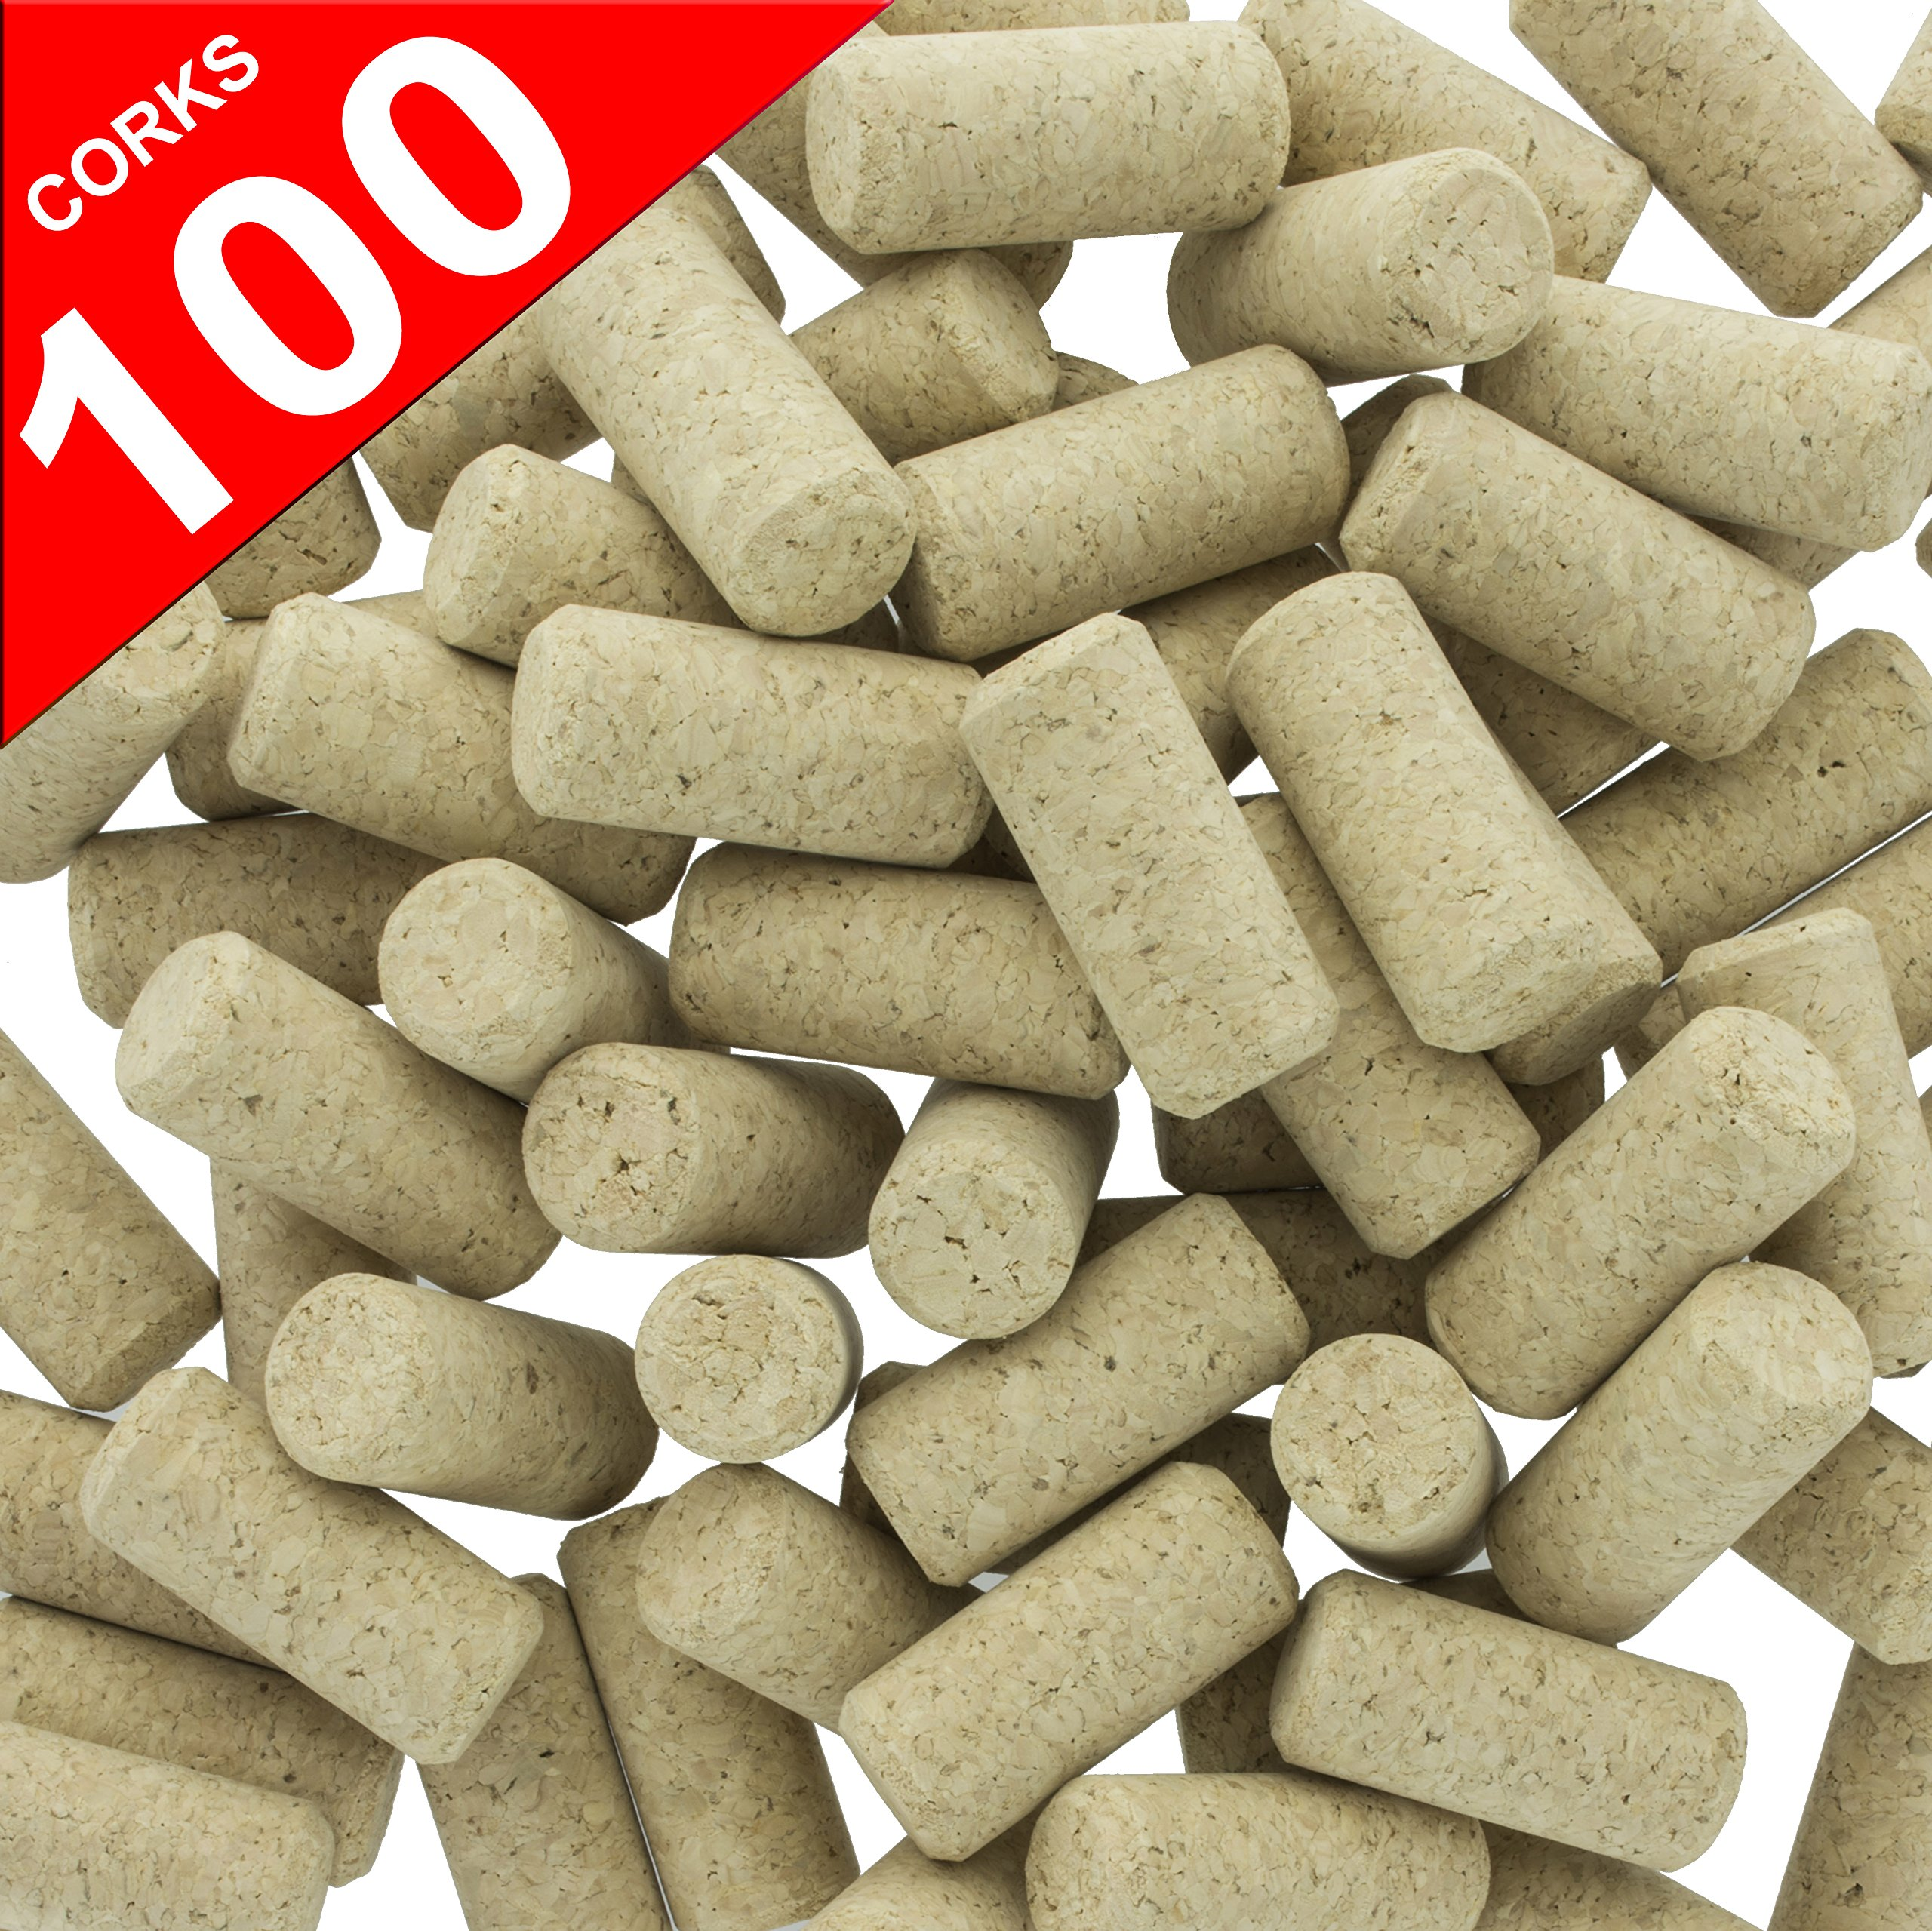 Wine cork 100 new wine corks 9 agglomerated natural for Natural corks